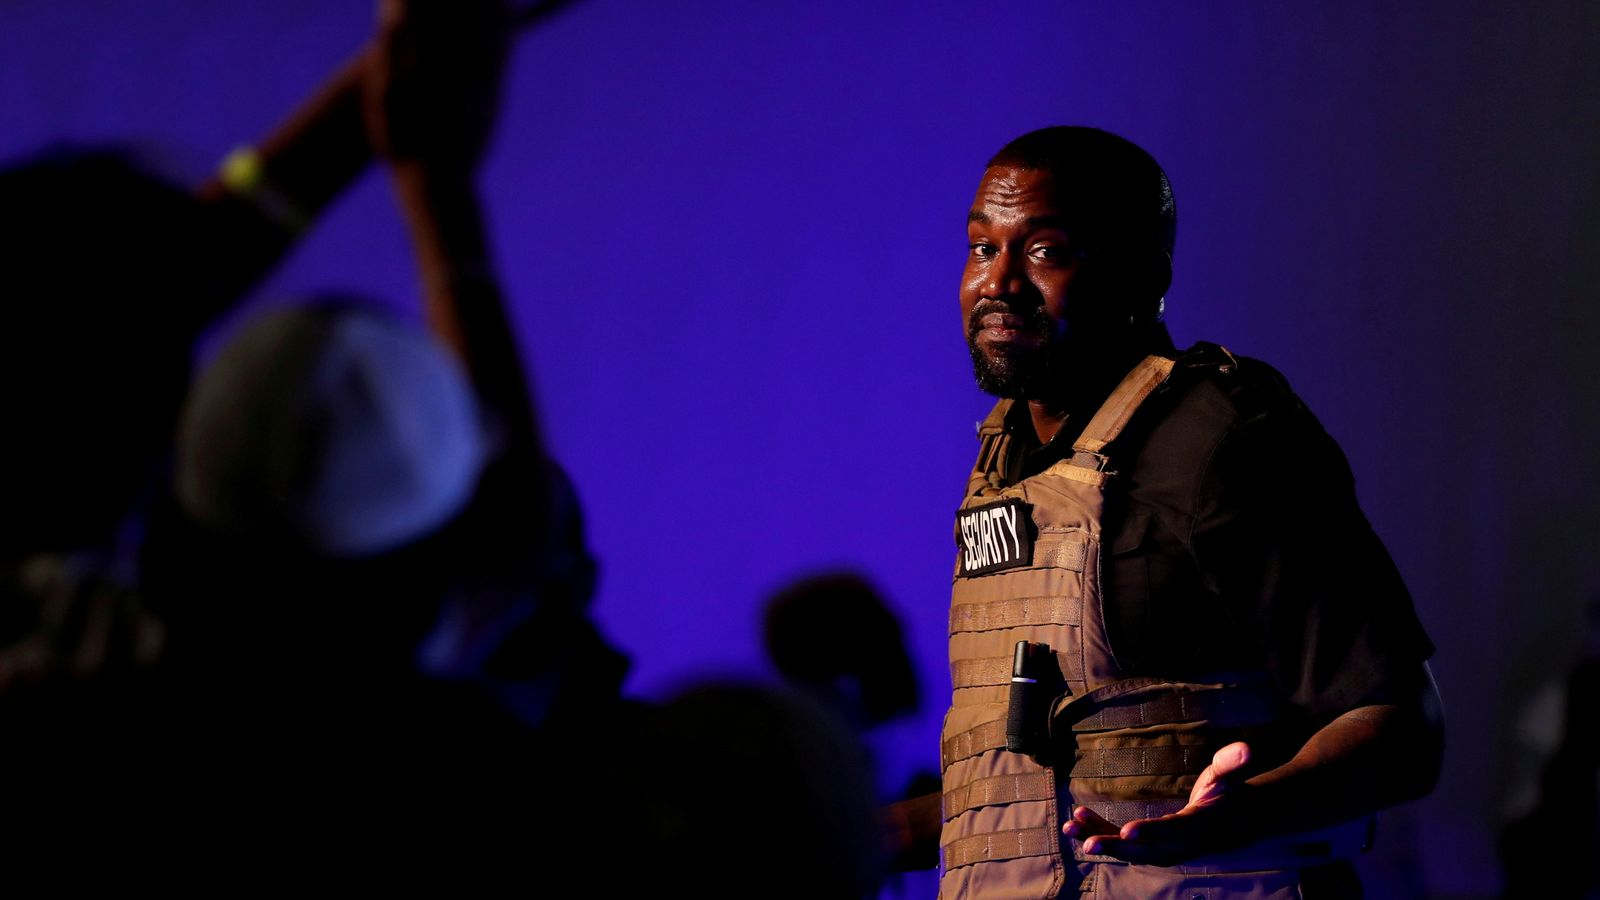 Kanye West premieres new album in Atlanta – including Jay-Z surprise feature